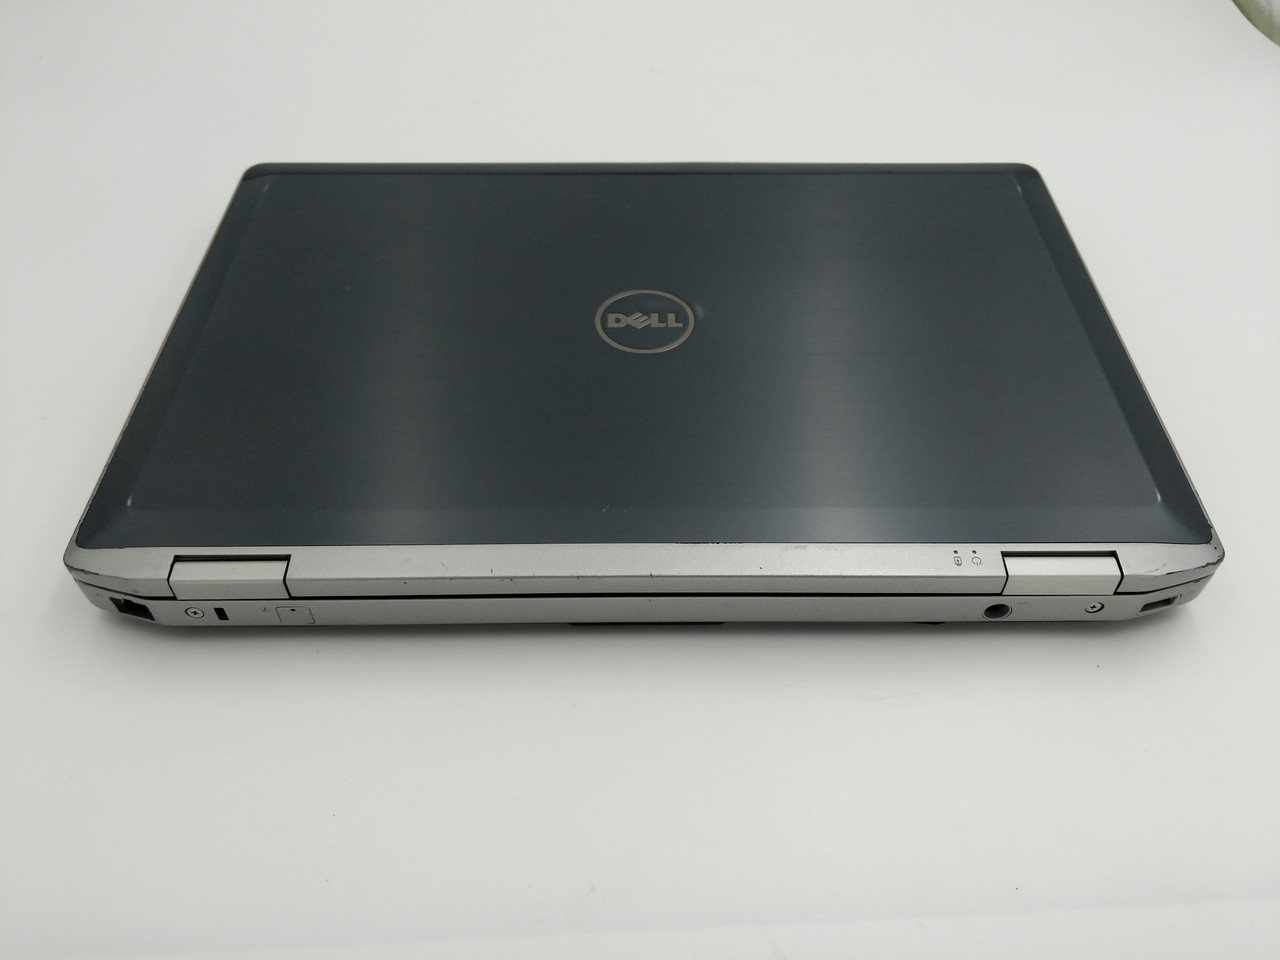 Б/У Dell Latitude E6520 15.6″ i5-2520M /DDR3 8 Gb /SSD 240 Gb / Нет в наличии 6